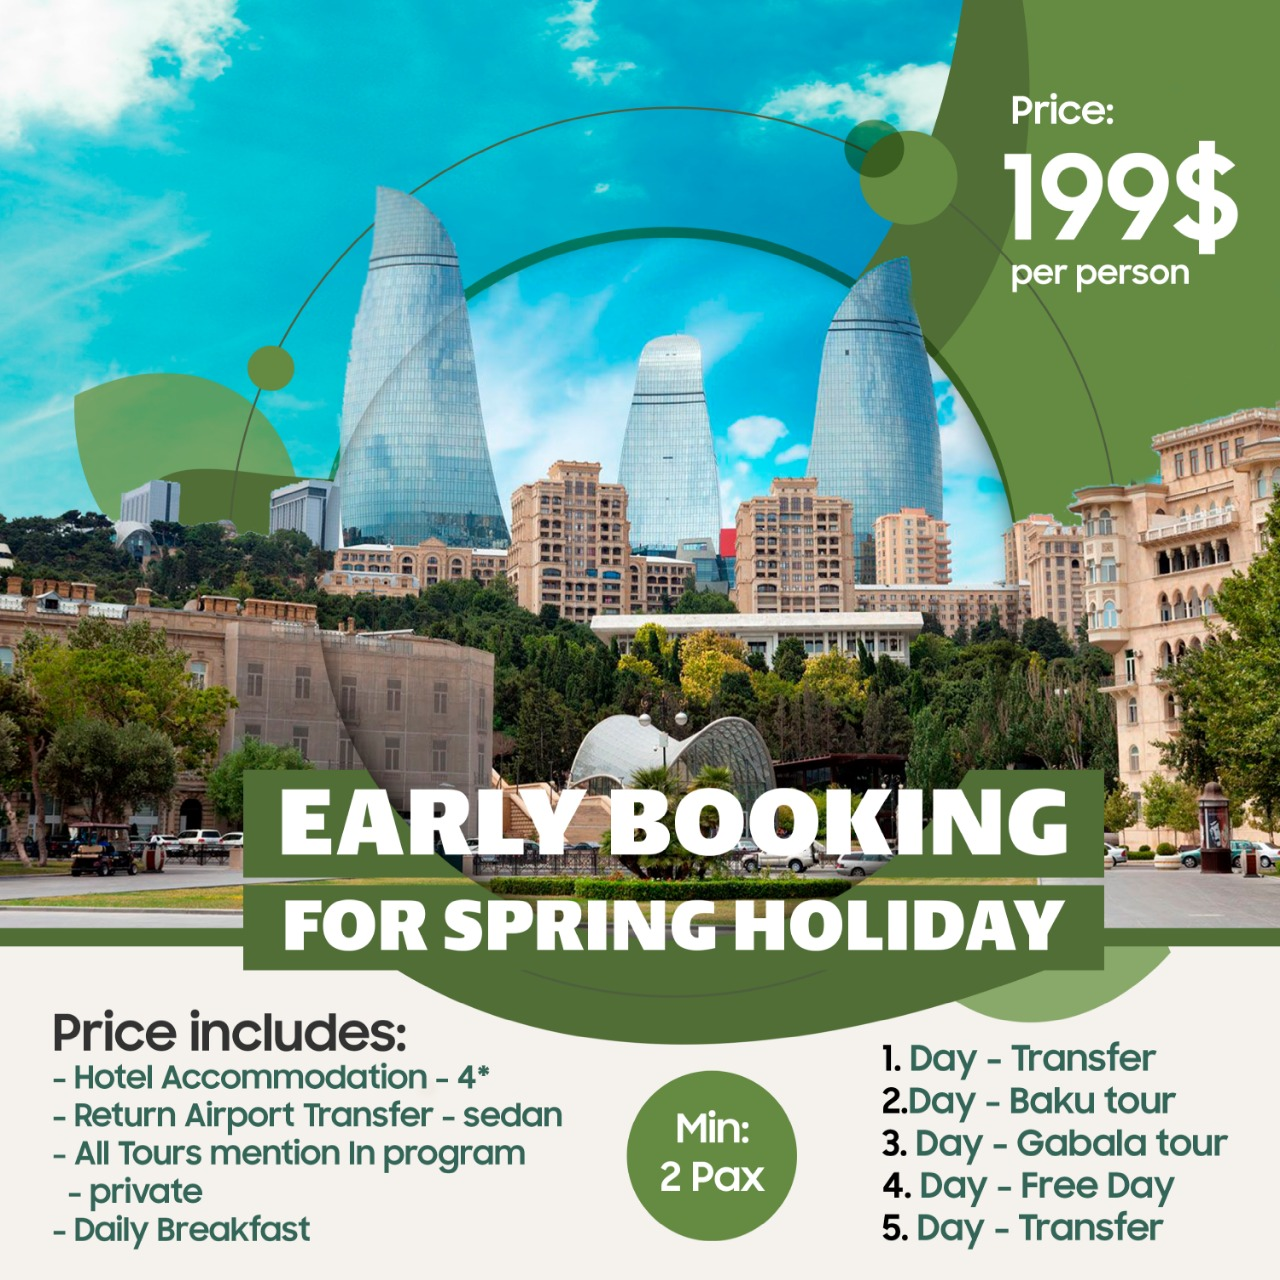 Baku Tour Package 2020 for 5 days